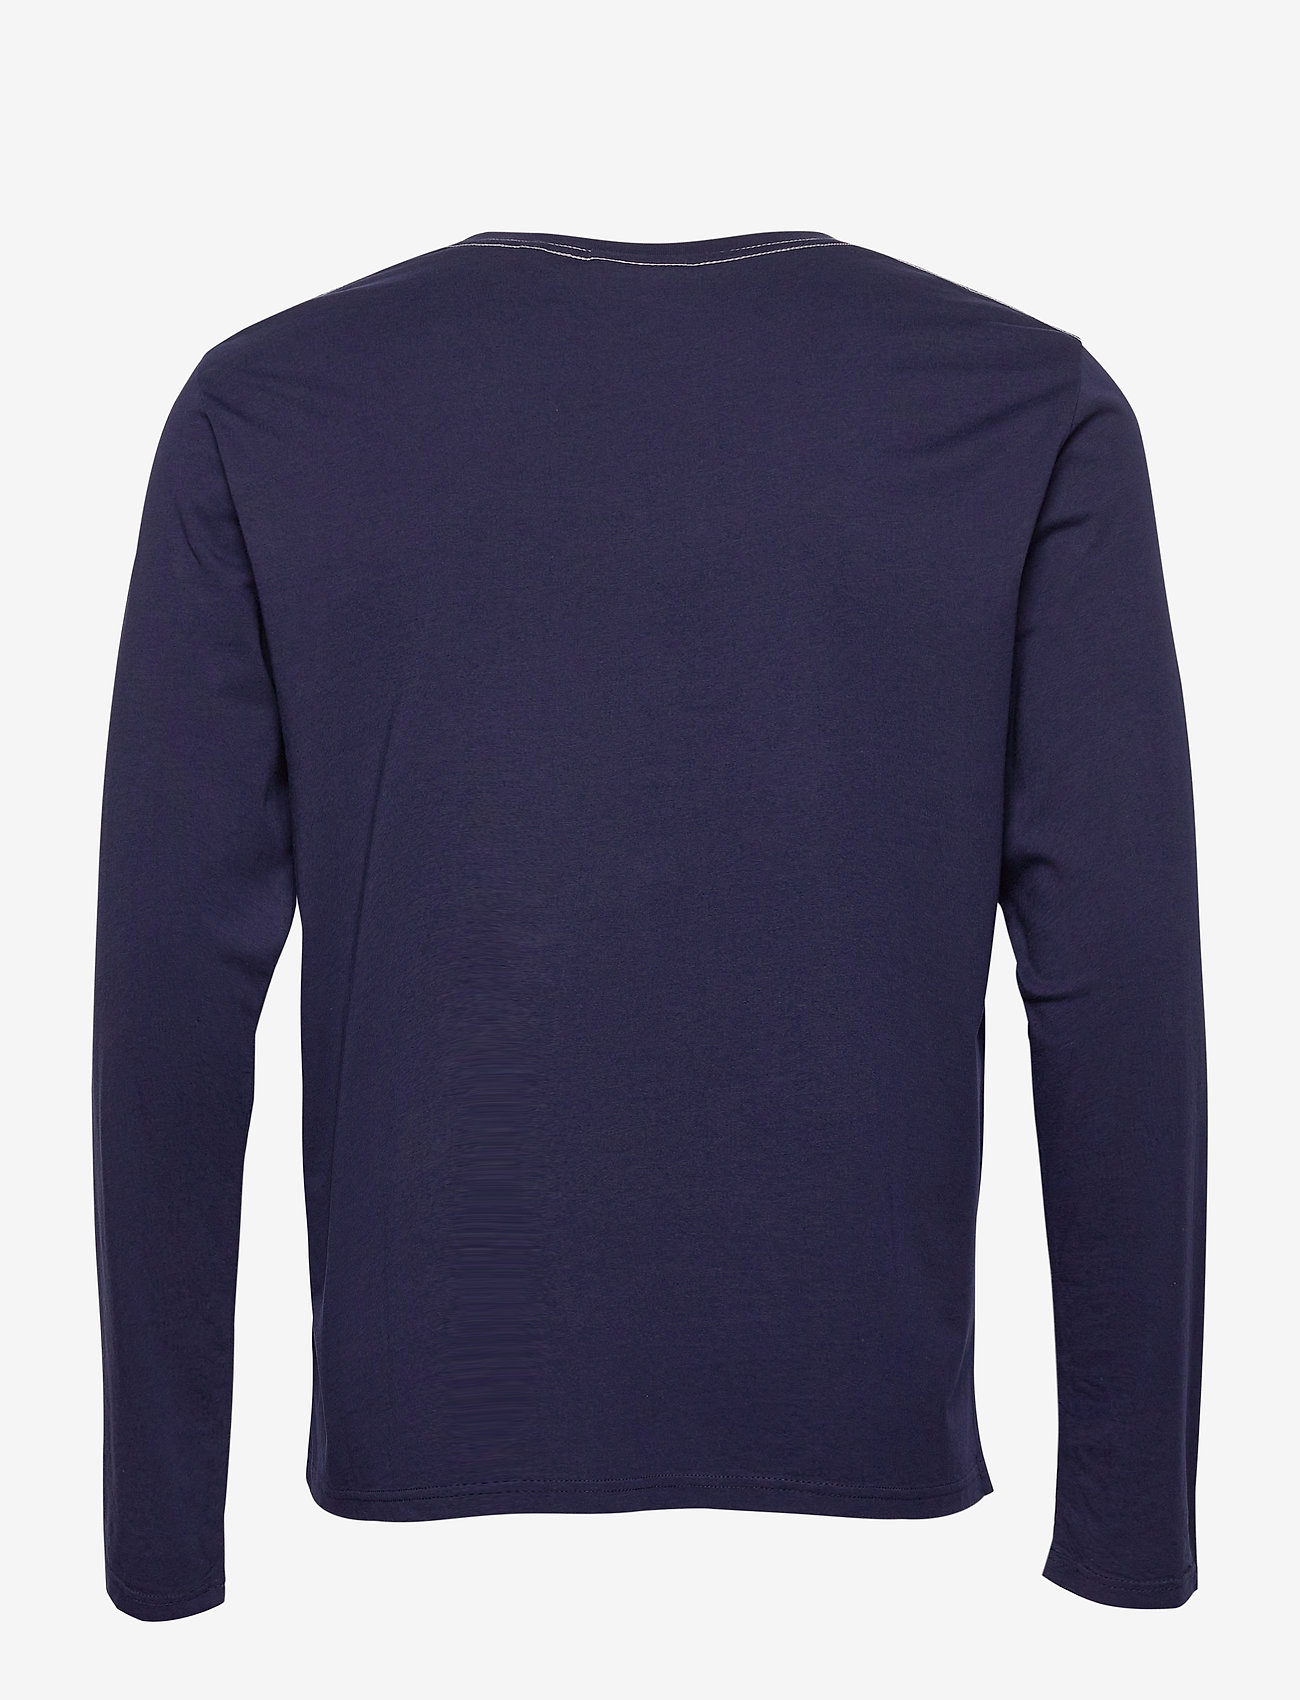 GANT ARCH OUTLINE LS T-SHIRT - T-skjorter EVENING BLUE - Menn Klær